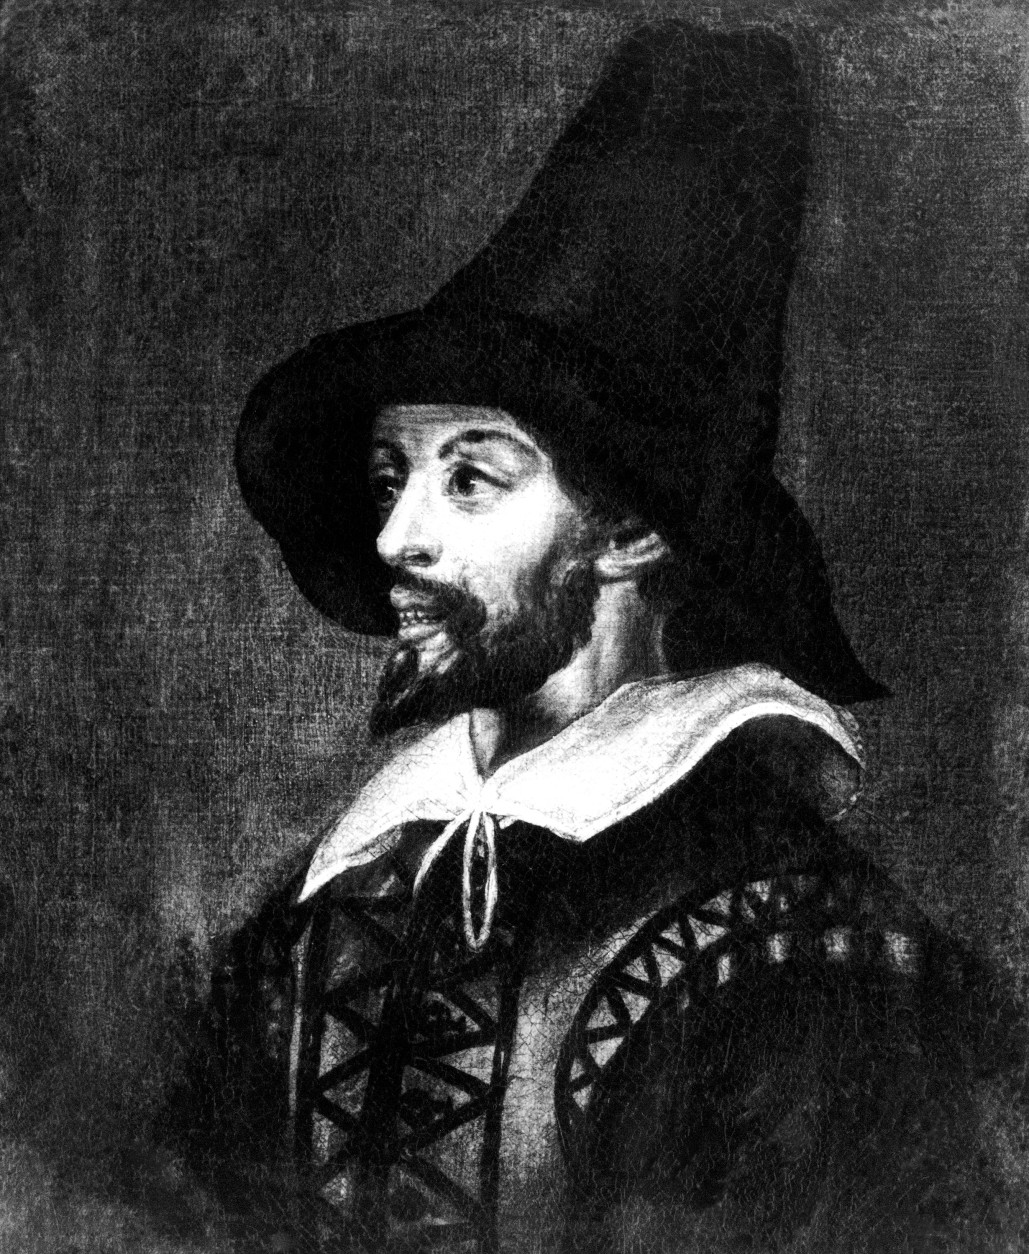 """A portrait of Guy Fawkes, shown Feb. 21, 1977, showing him gaunt from torture after discovery of the Gunpowder Plot of 1606, which is to be sold at Sothebys on March 9. It was done anonymously during """"one of his examinations"""" --  the interrogation torture at the Tower after his arrest. Fawkes was tortured extensively to reveal the names of the other plotters and his crushed fingers could barely sign the confession which is in the Public Record Office. The portrait is expected to fetch between £200 - £400. (AP Photo/Press Association)"""